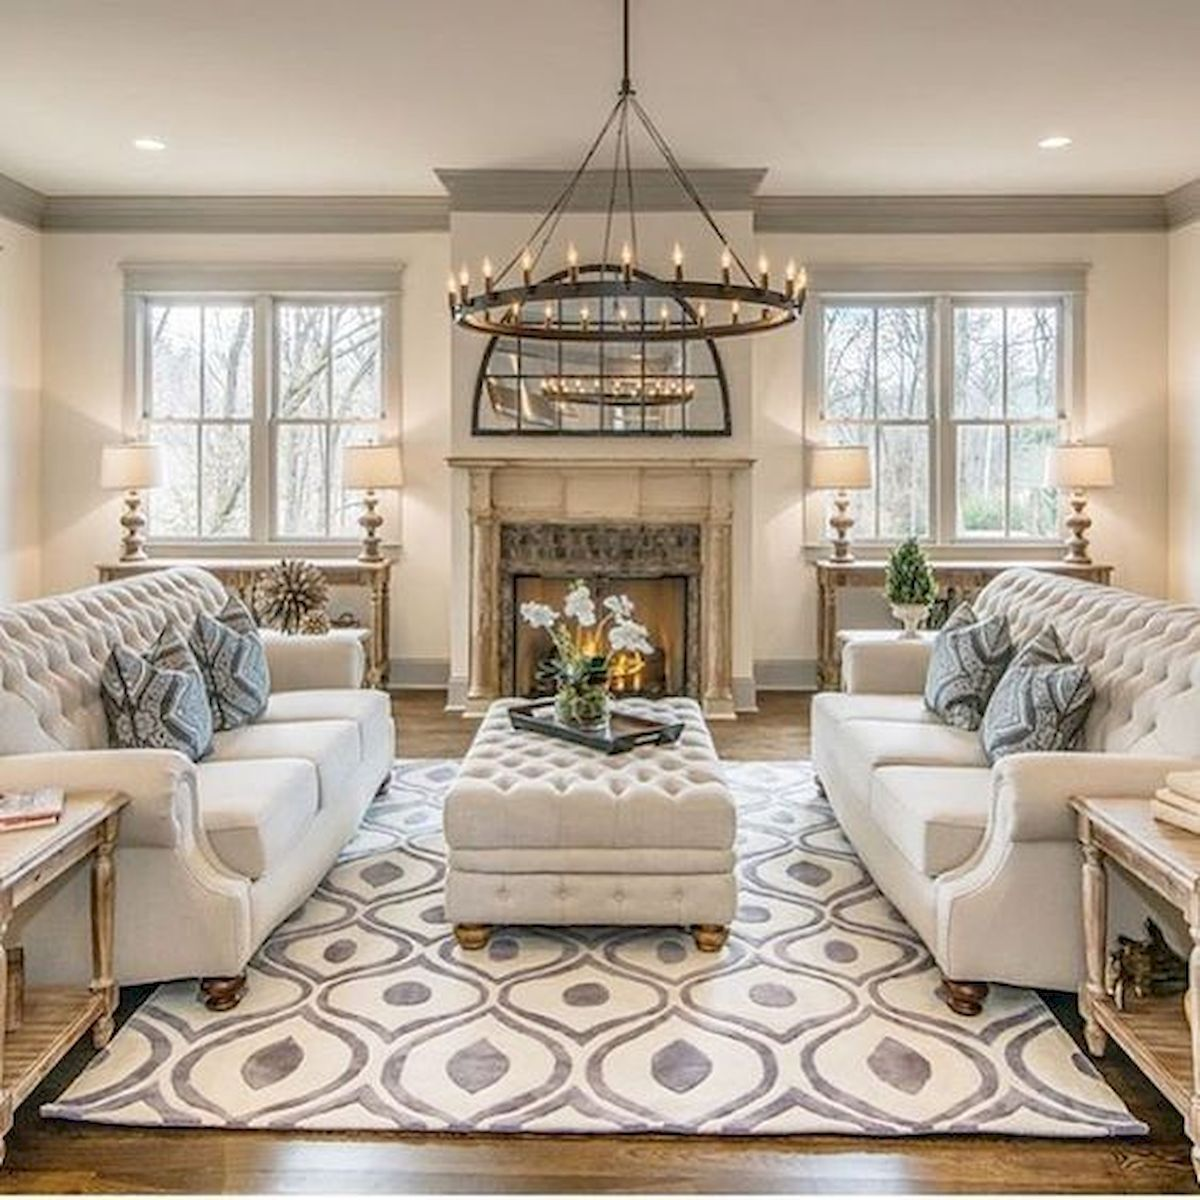 Cool 30 Stunning Farmhouse Living Room Decor Ideas Https Coachdecor Com 30 Stunning Farmhouse L Farm House Living Room Living Room Carpet Country Living Room